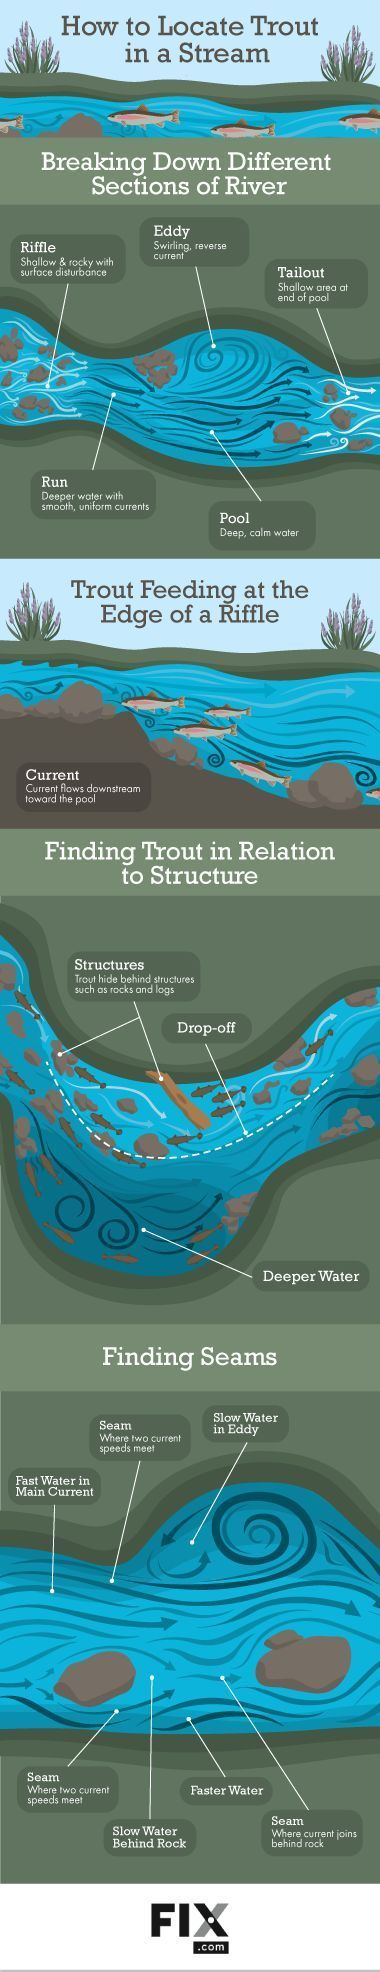 Learn to Read the Water to Locate Trout in Streams | http://Fix.com